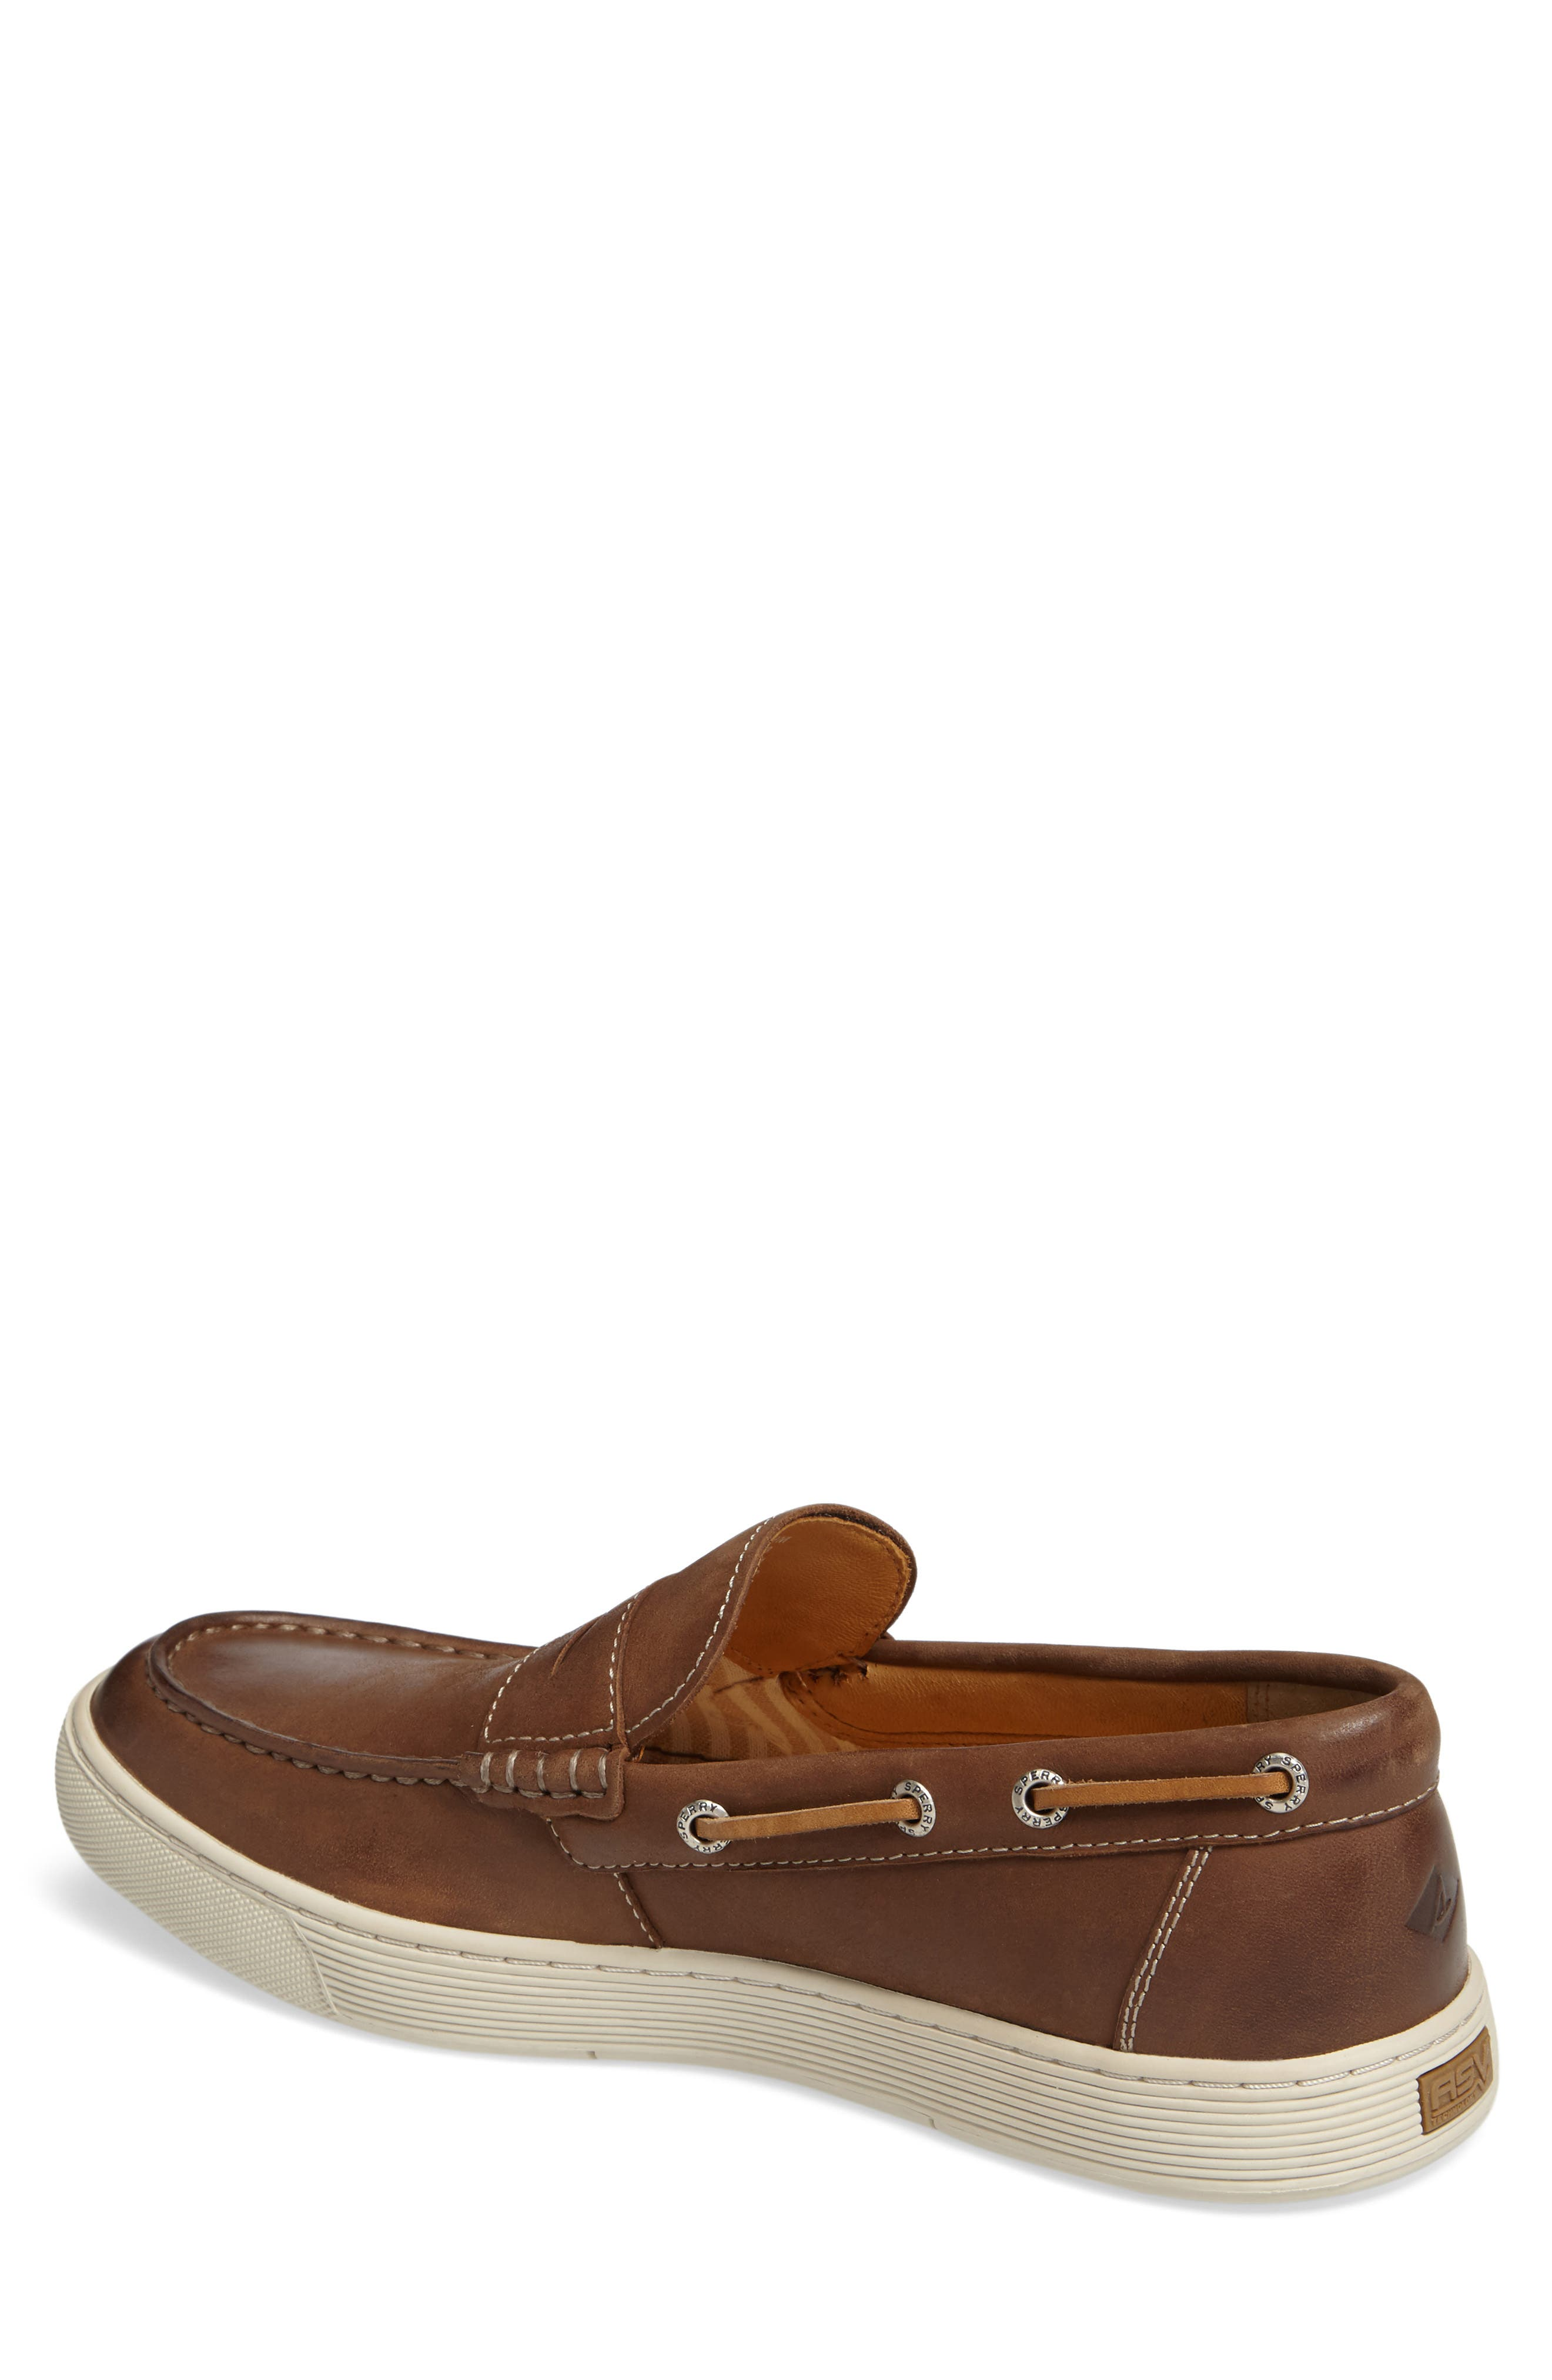 Gold Cup Penny Loafer,                             Alternate thumbnail 4, color,